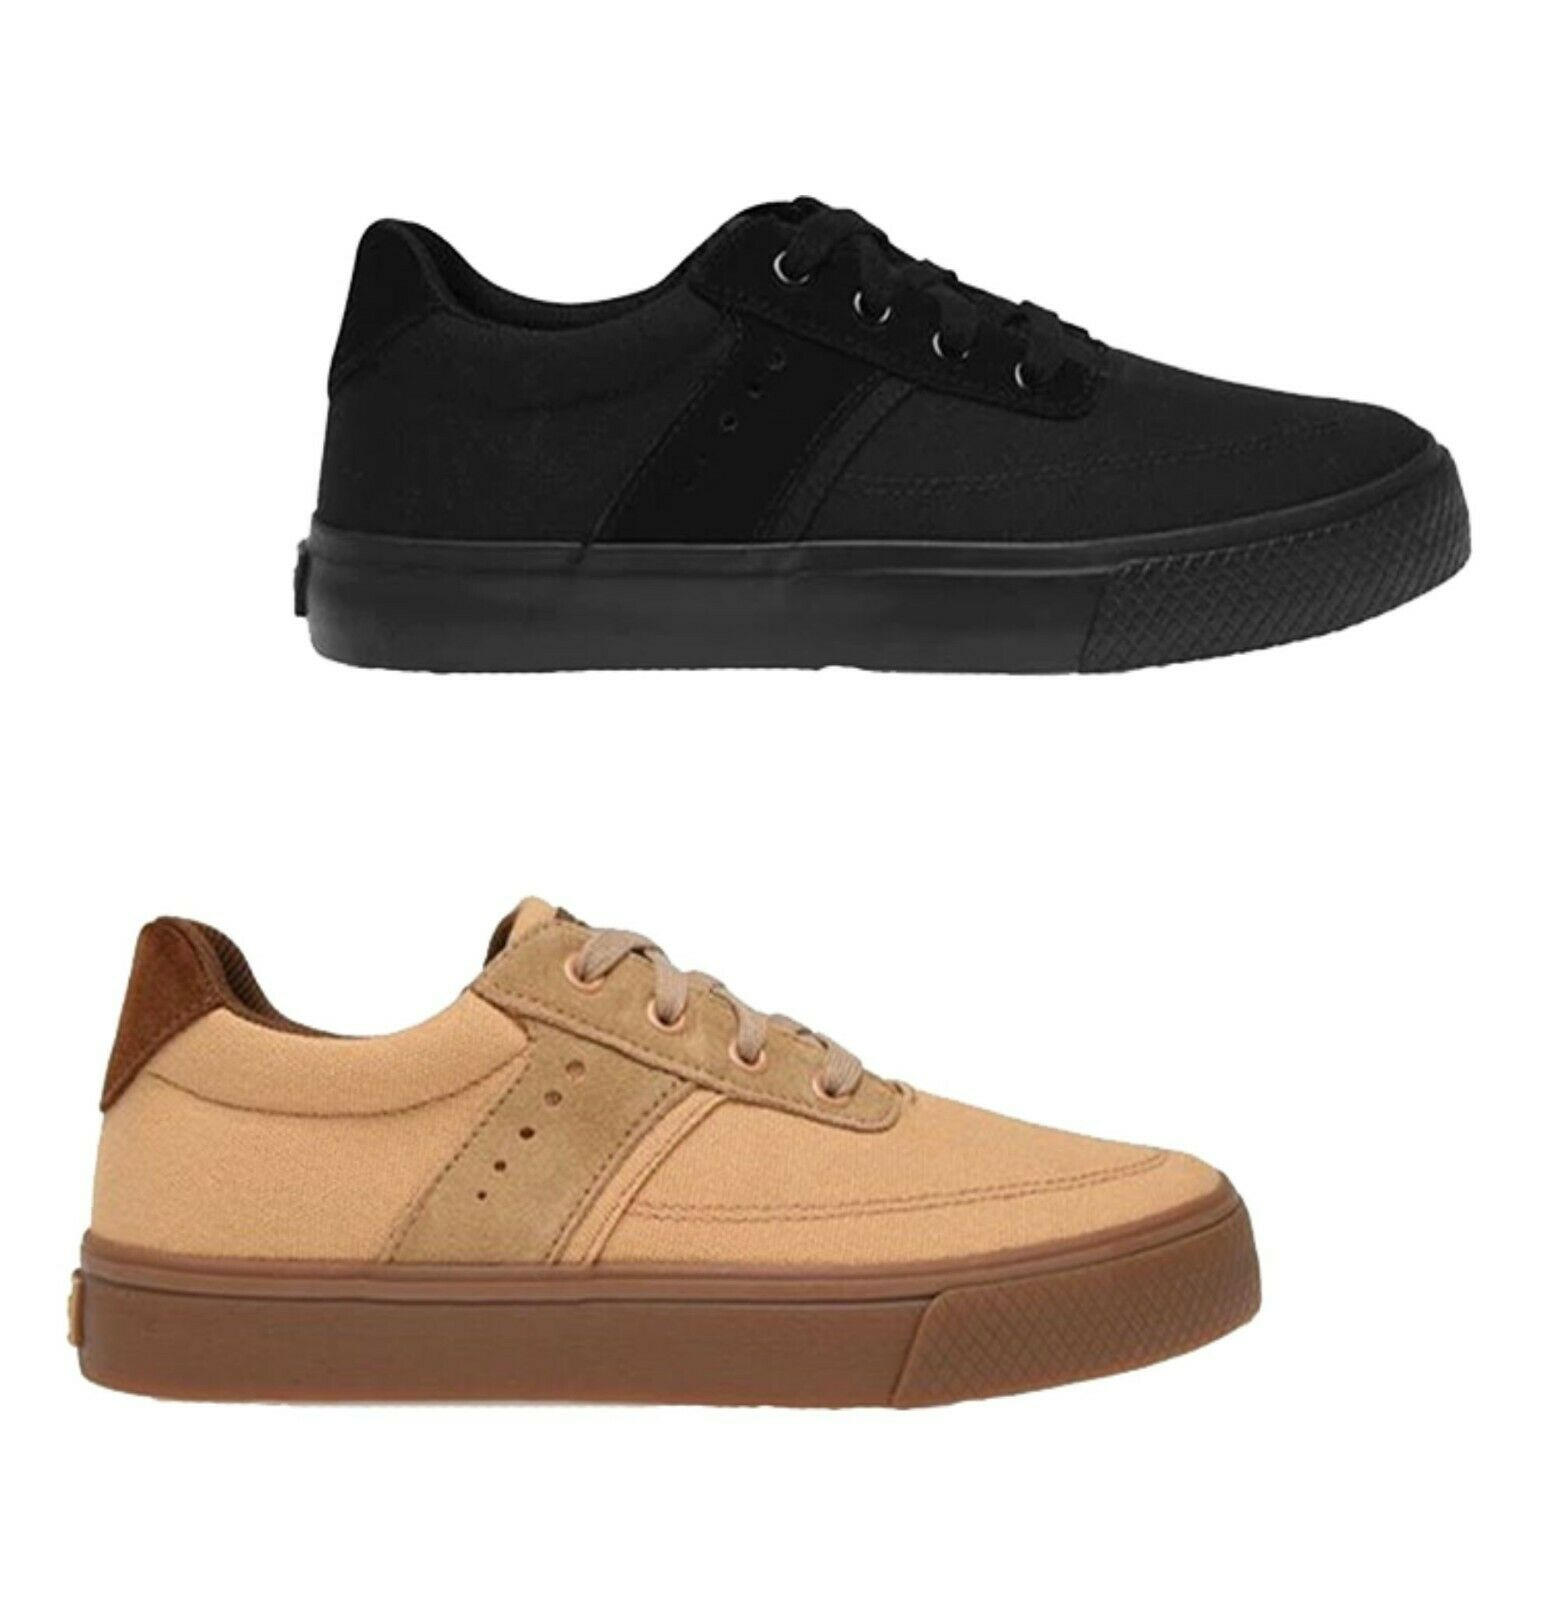 Mens Airwalk Footwear Lace Cushioned Albany Trainers Sizes from 7 to 11